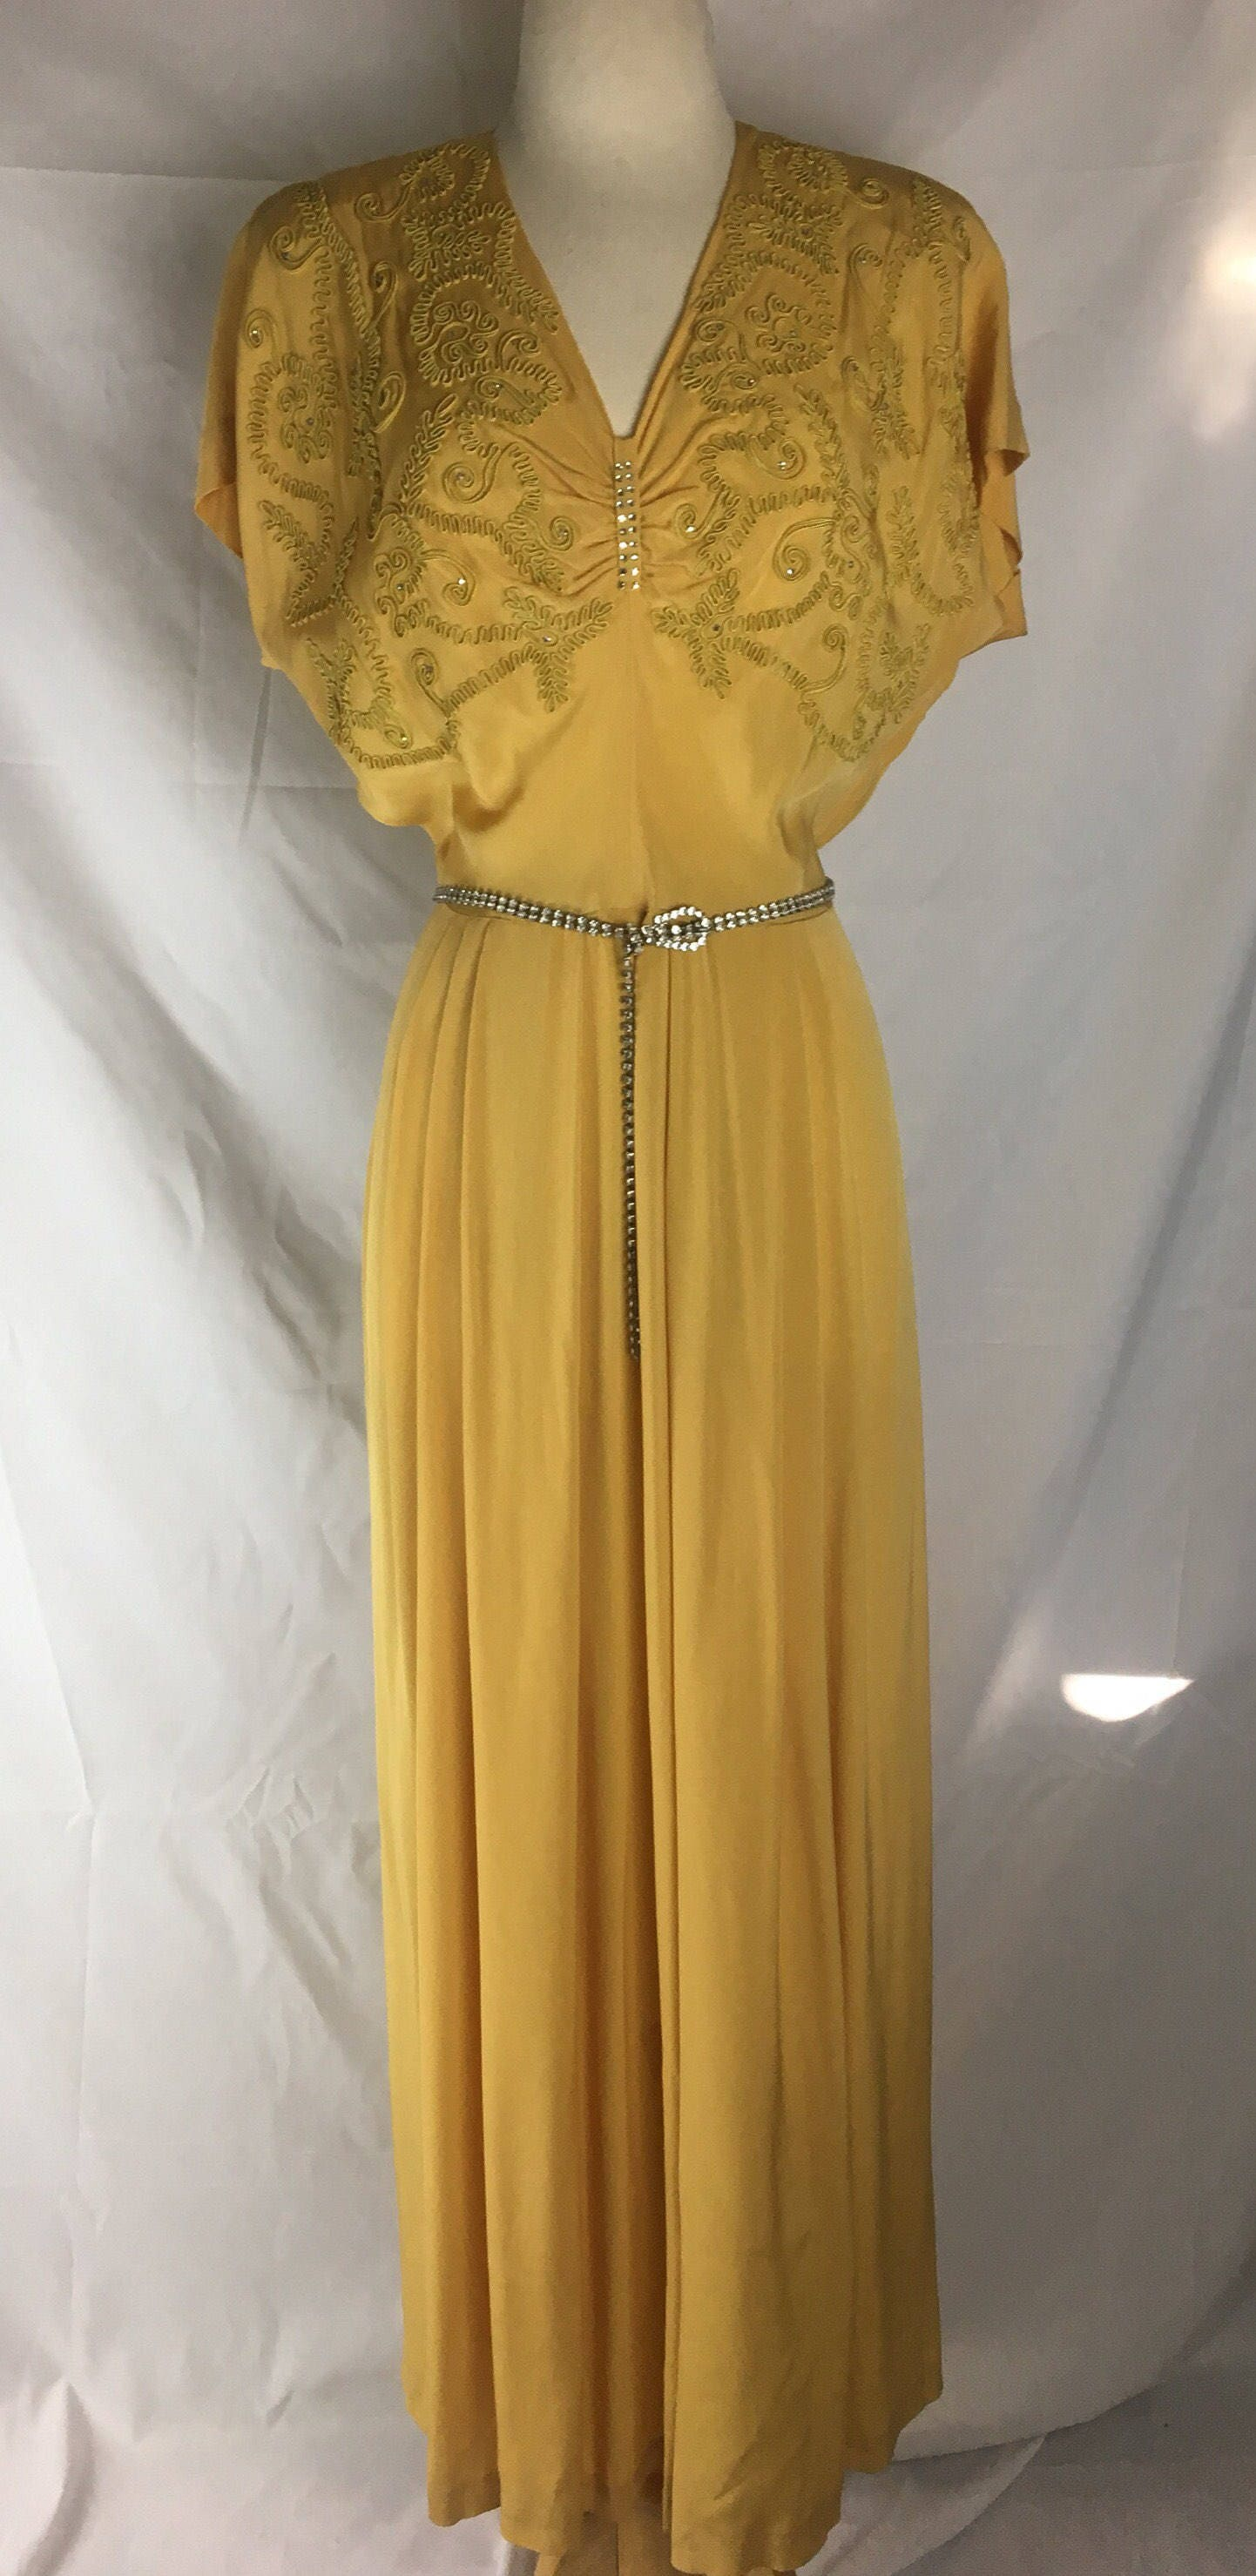 Vintage 1940s Mustard Yellow Evening Gown W Rhinestone Accents Xl 32